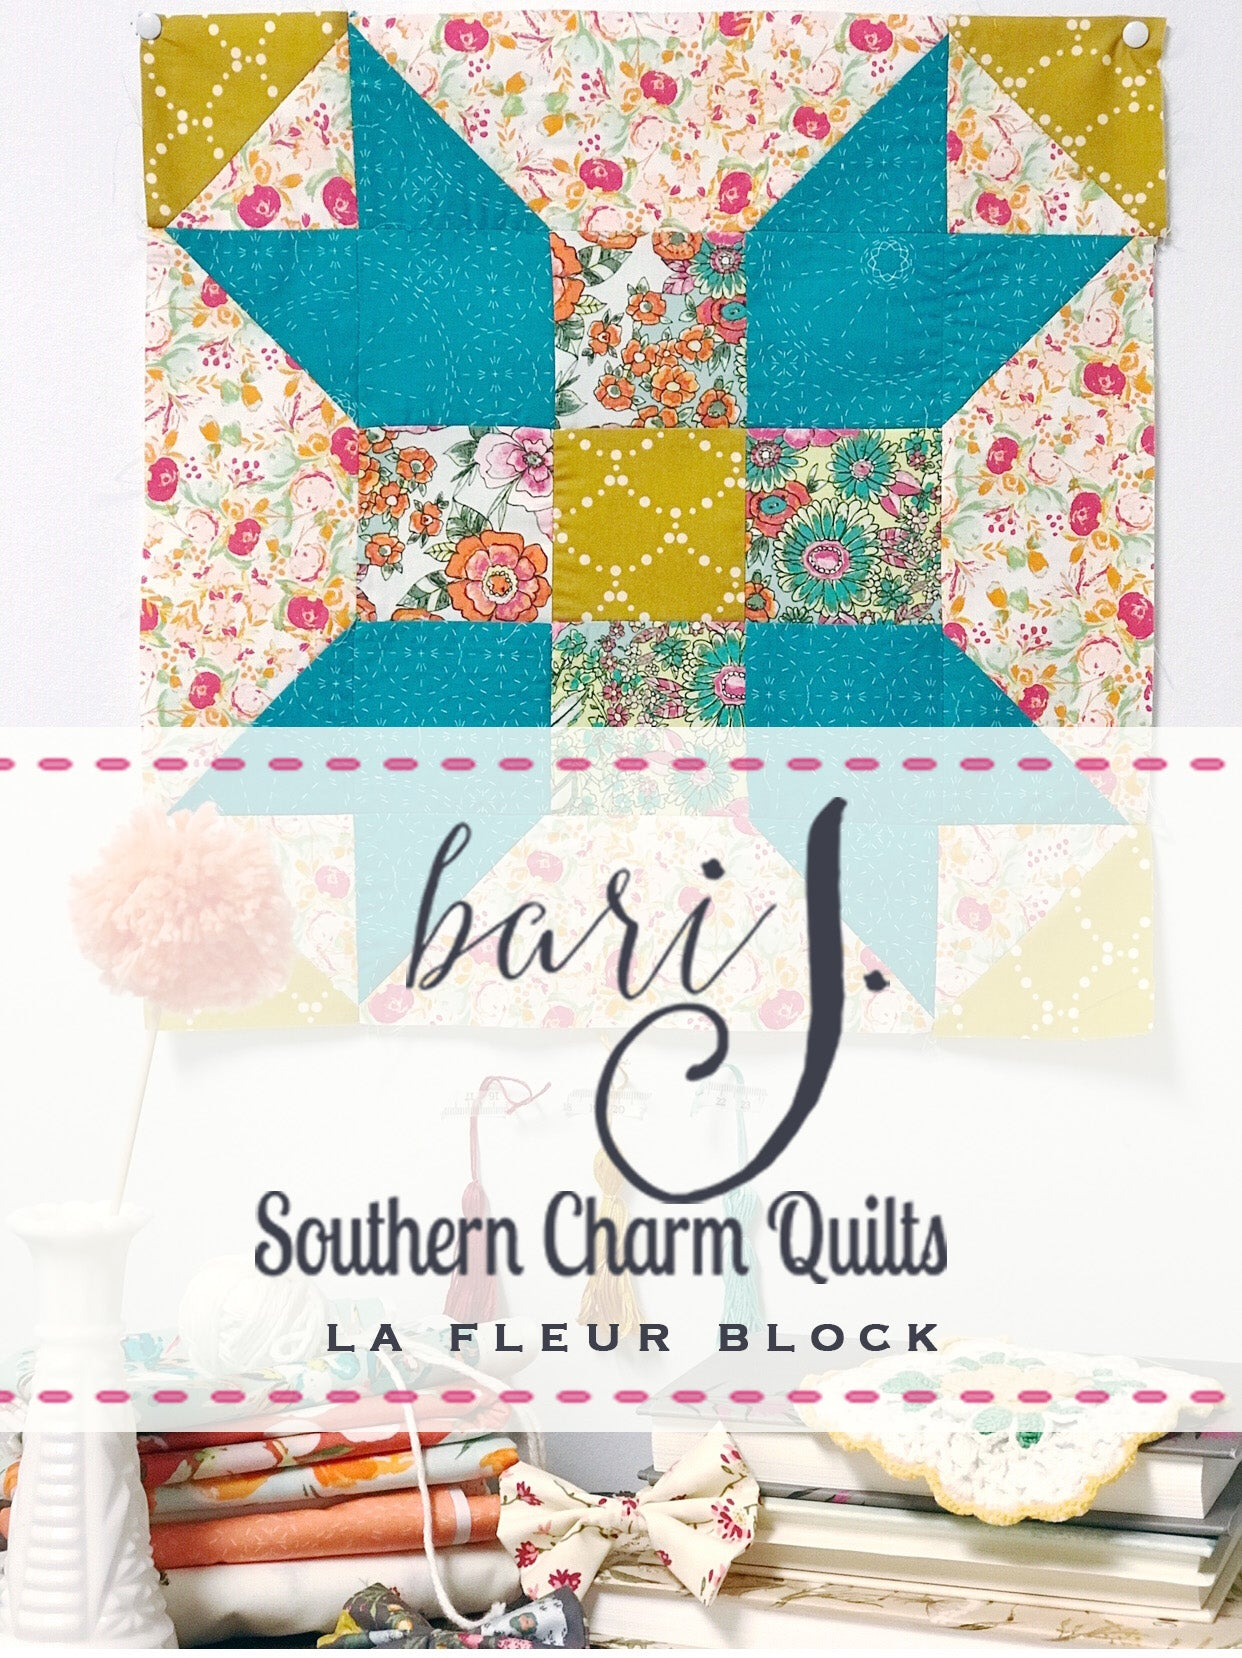 Bari J. Souther Charm quilts quilt along